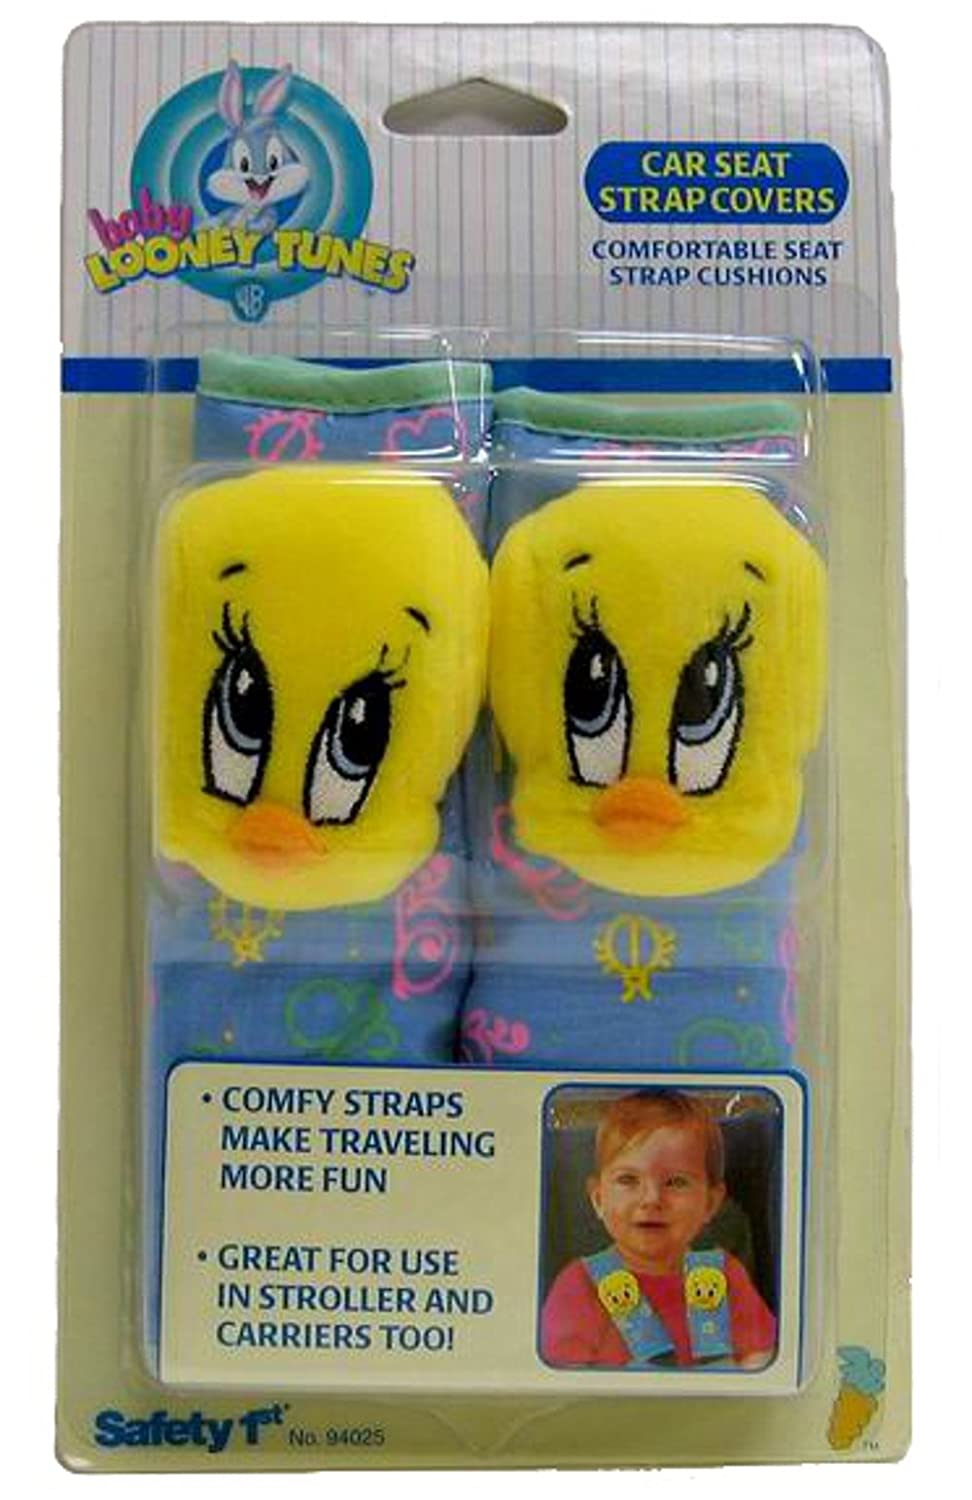 Tweety Car Seat Strap Covers